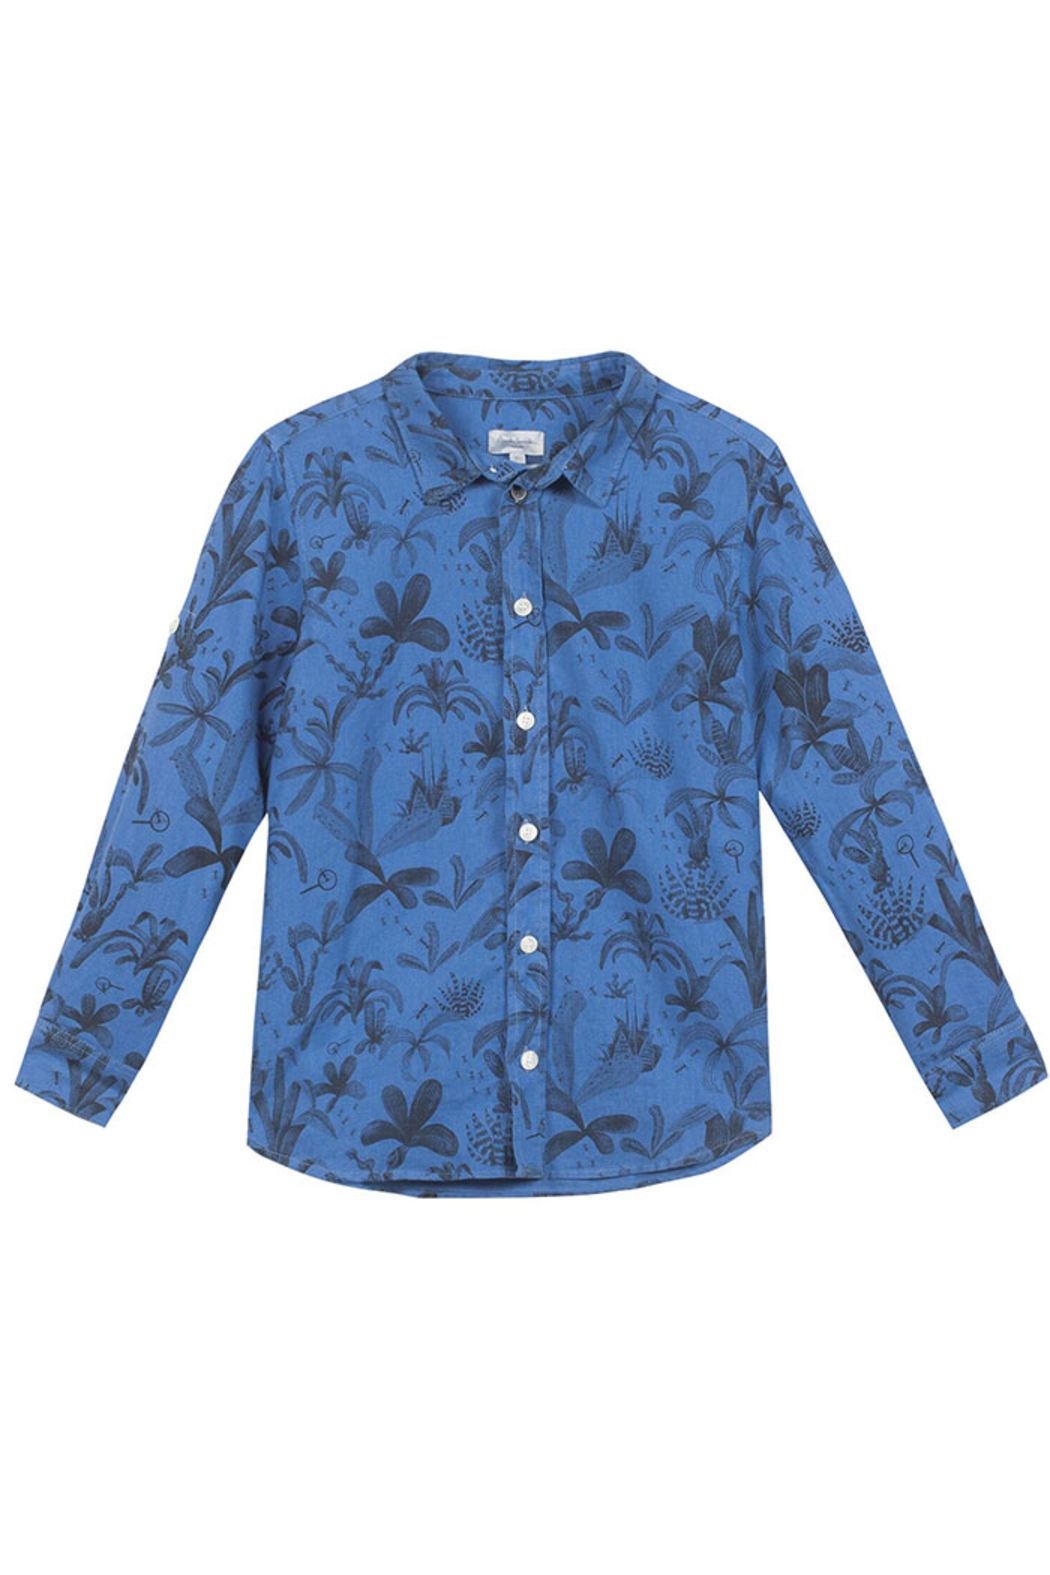 Paul Smith 2-8 Y Hawaiian Shirt - Main Image